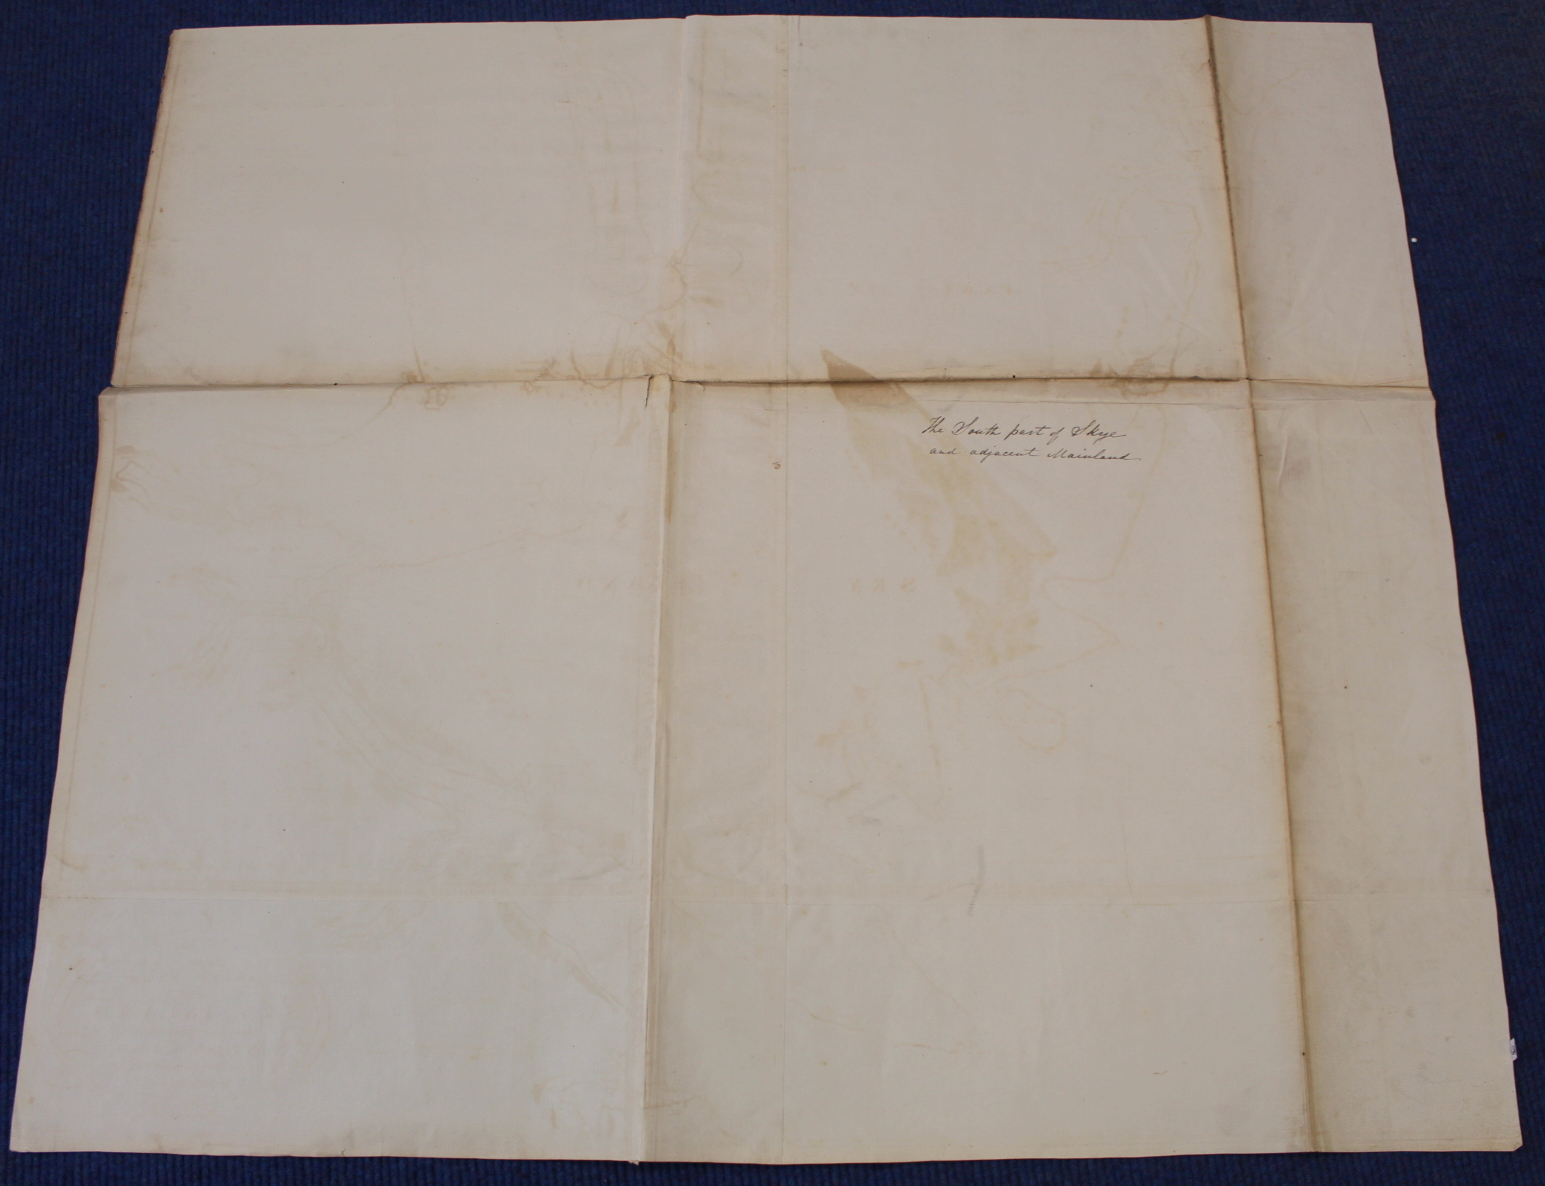 MACKENZIE MURDOCH (SNR.).A General Chart of the West Coast & Western Islands of Scotland from - Image 15 of 66